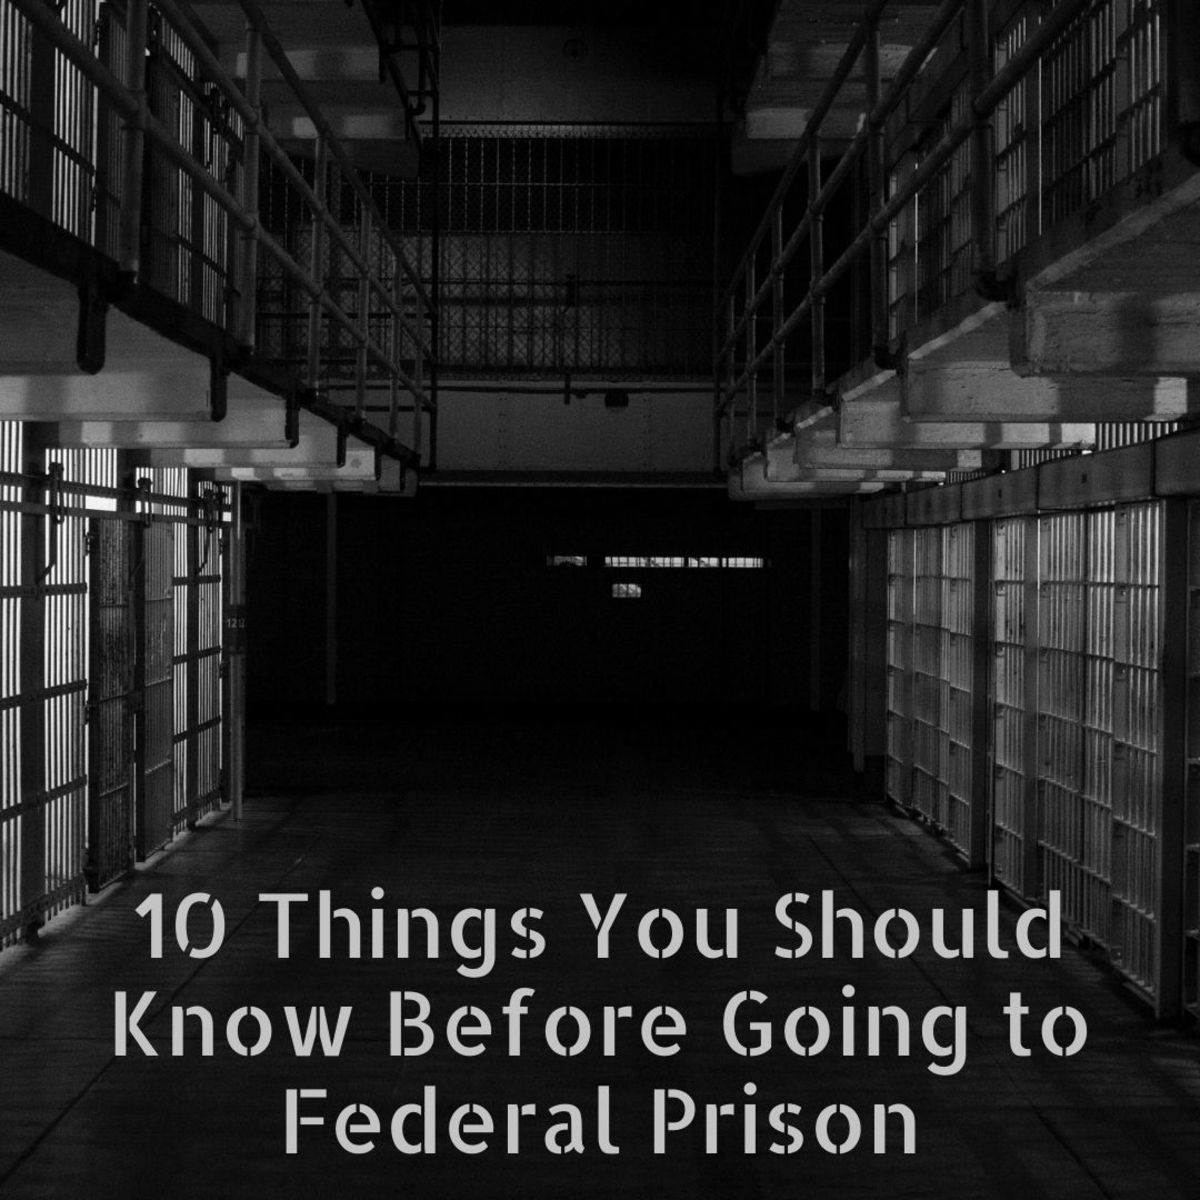 Going to prison is tough—here are 10 things you should know about life in prison before you go.